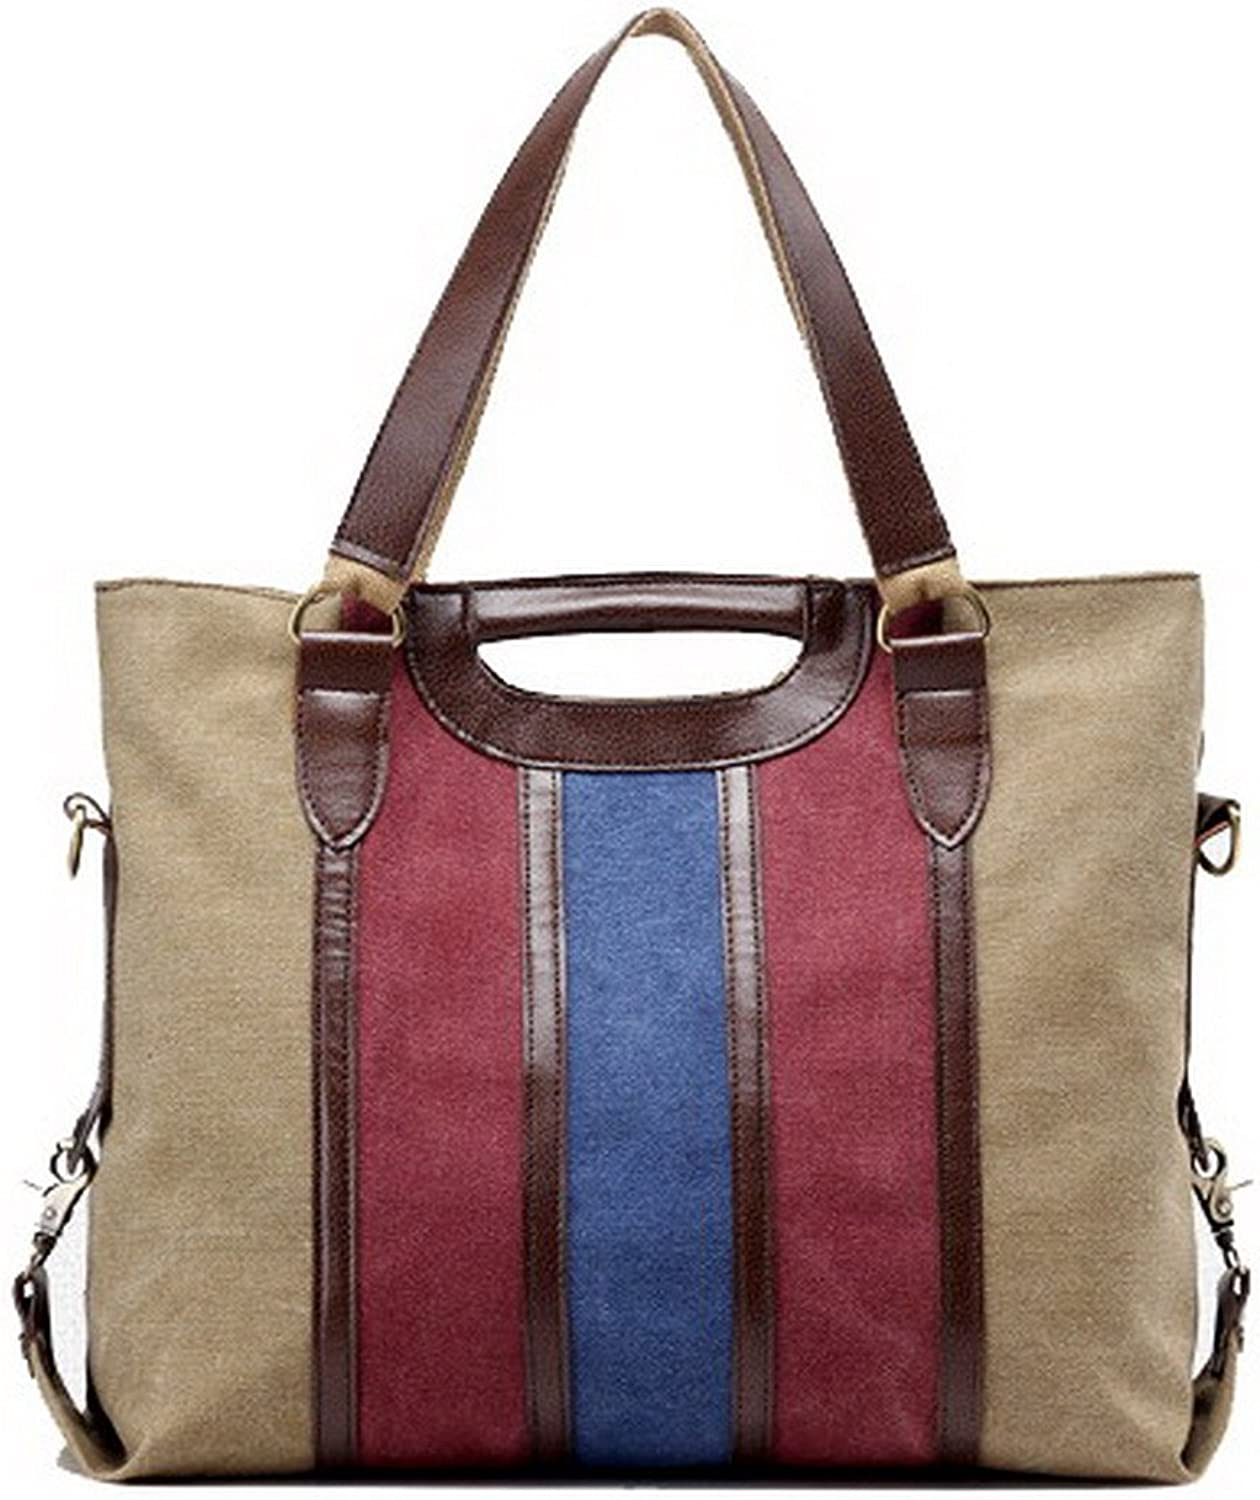 WeiPoot Women's Work Canvas Crossbody Bags Shopping Tote Bags, EGHBG181353